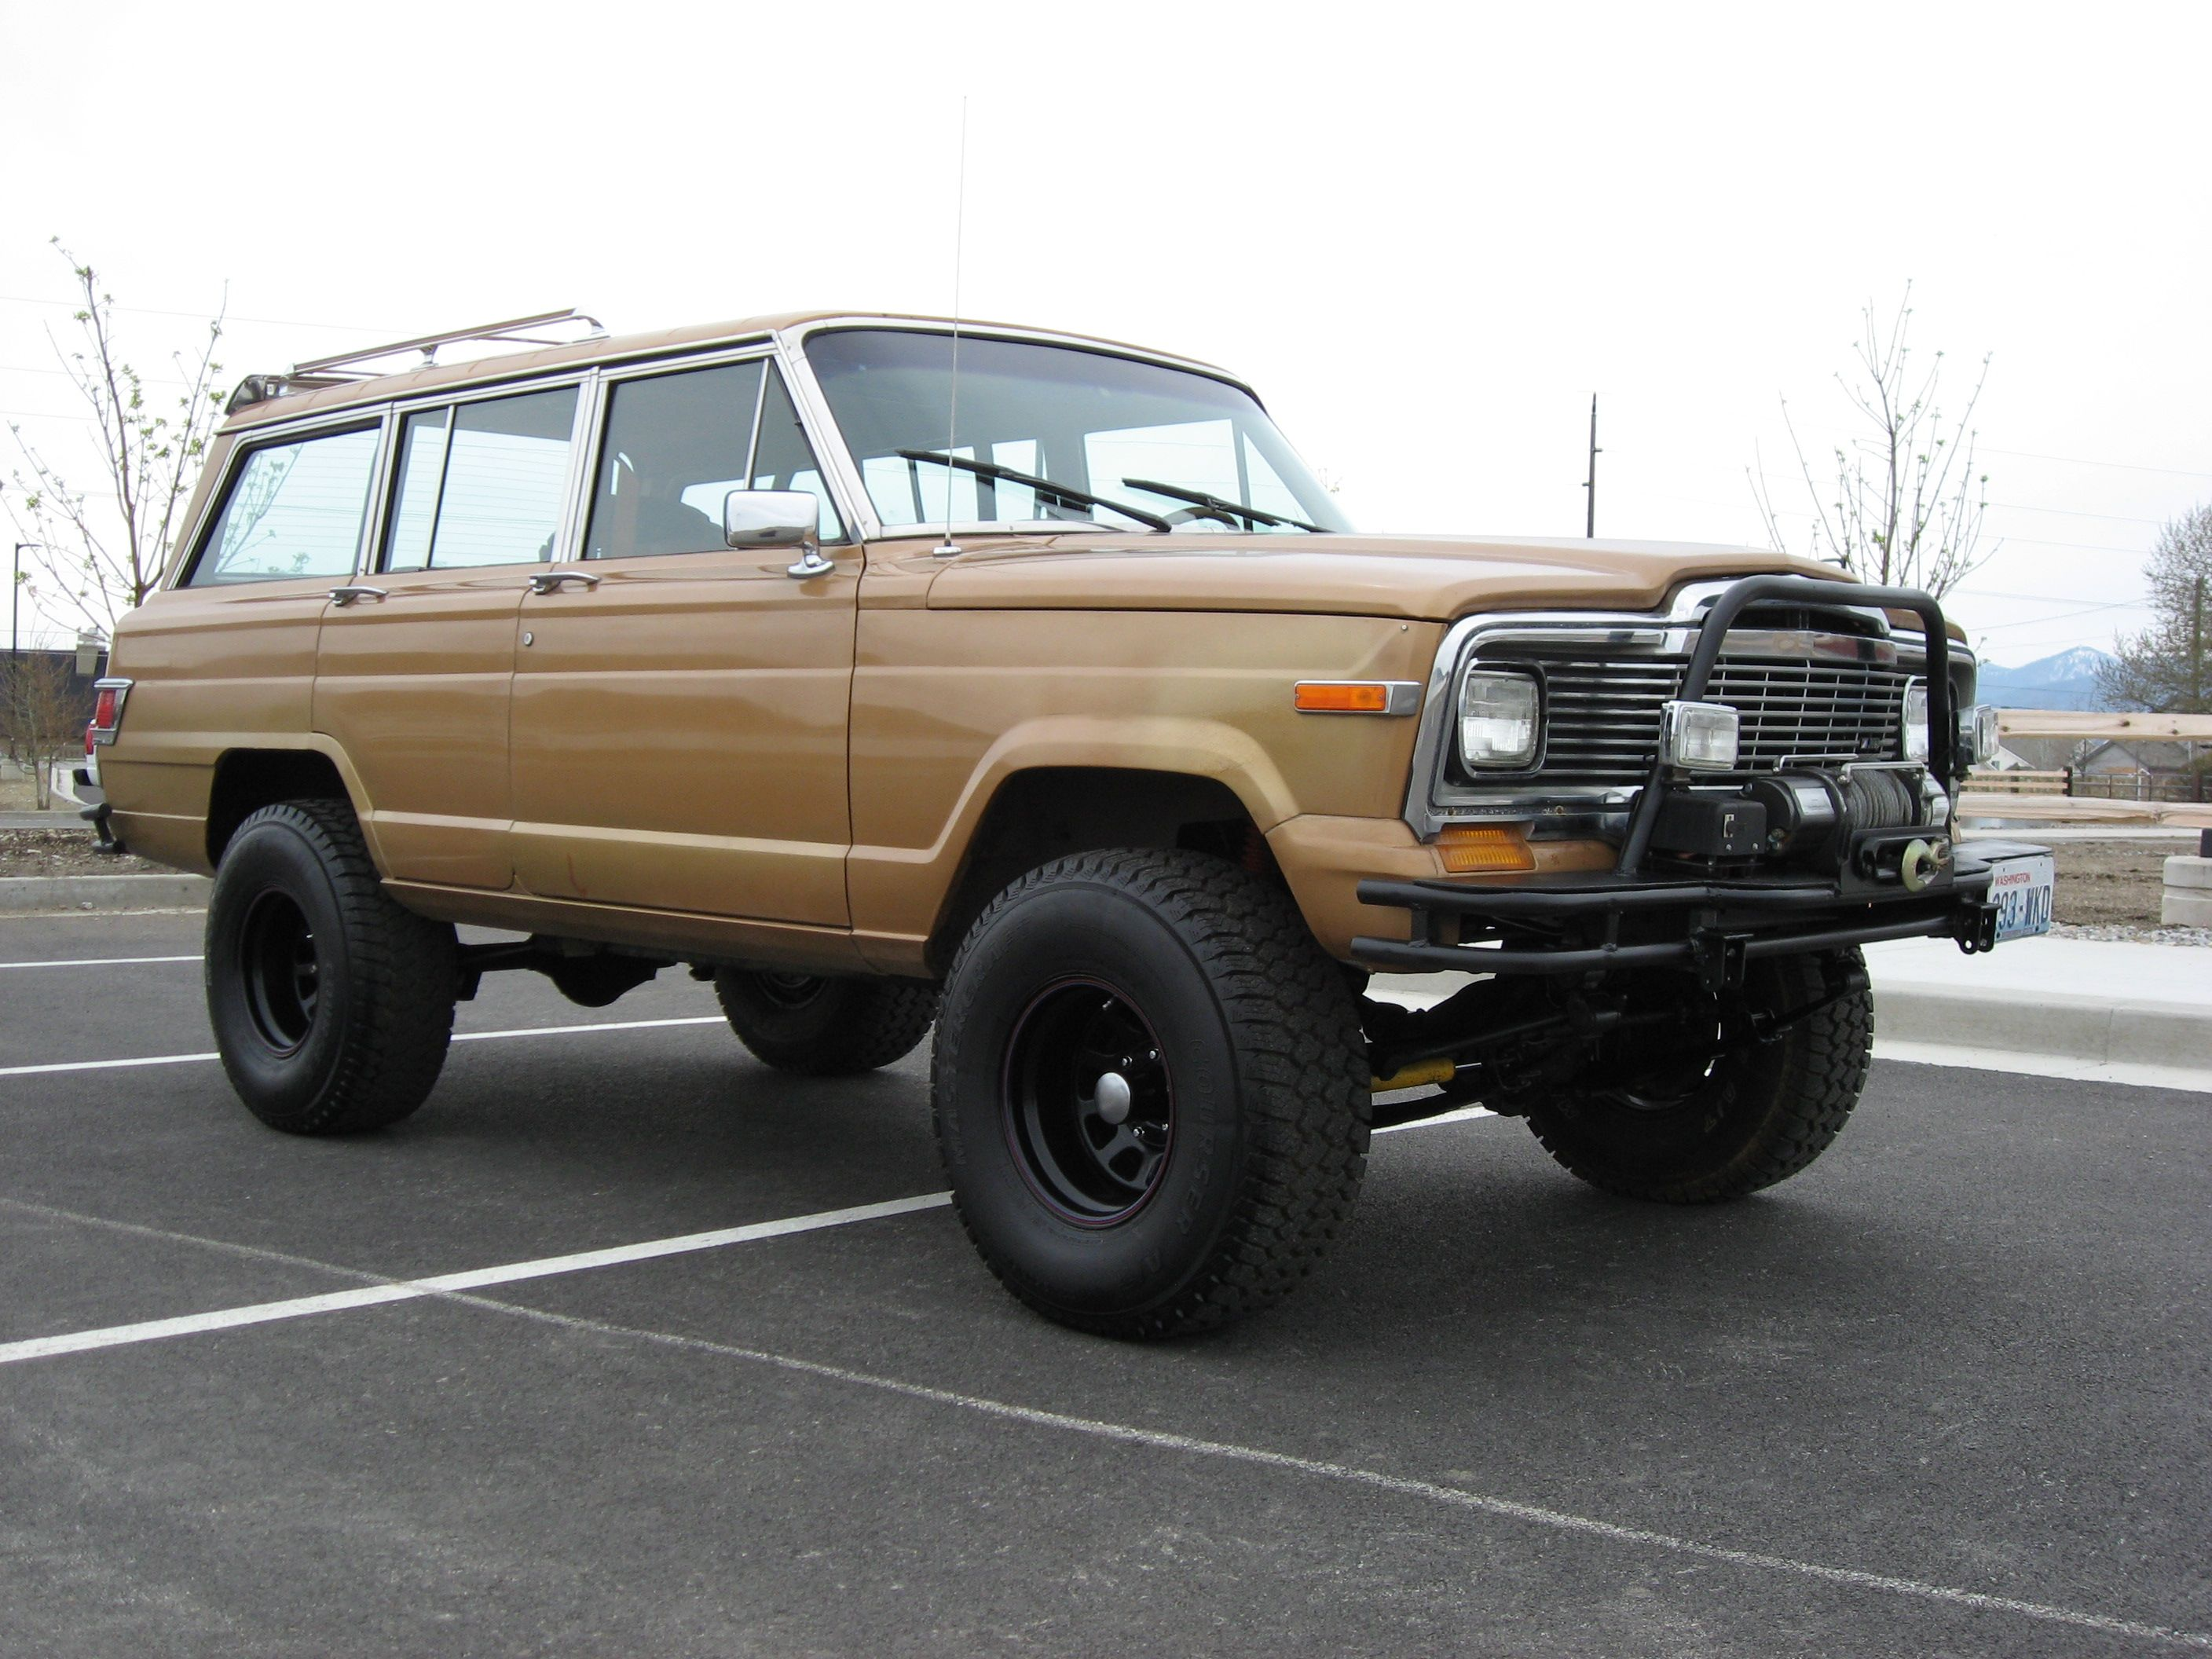 1984 Jeep Grand Wagoneer Build By Hotrodsonny Terreinwagens